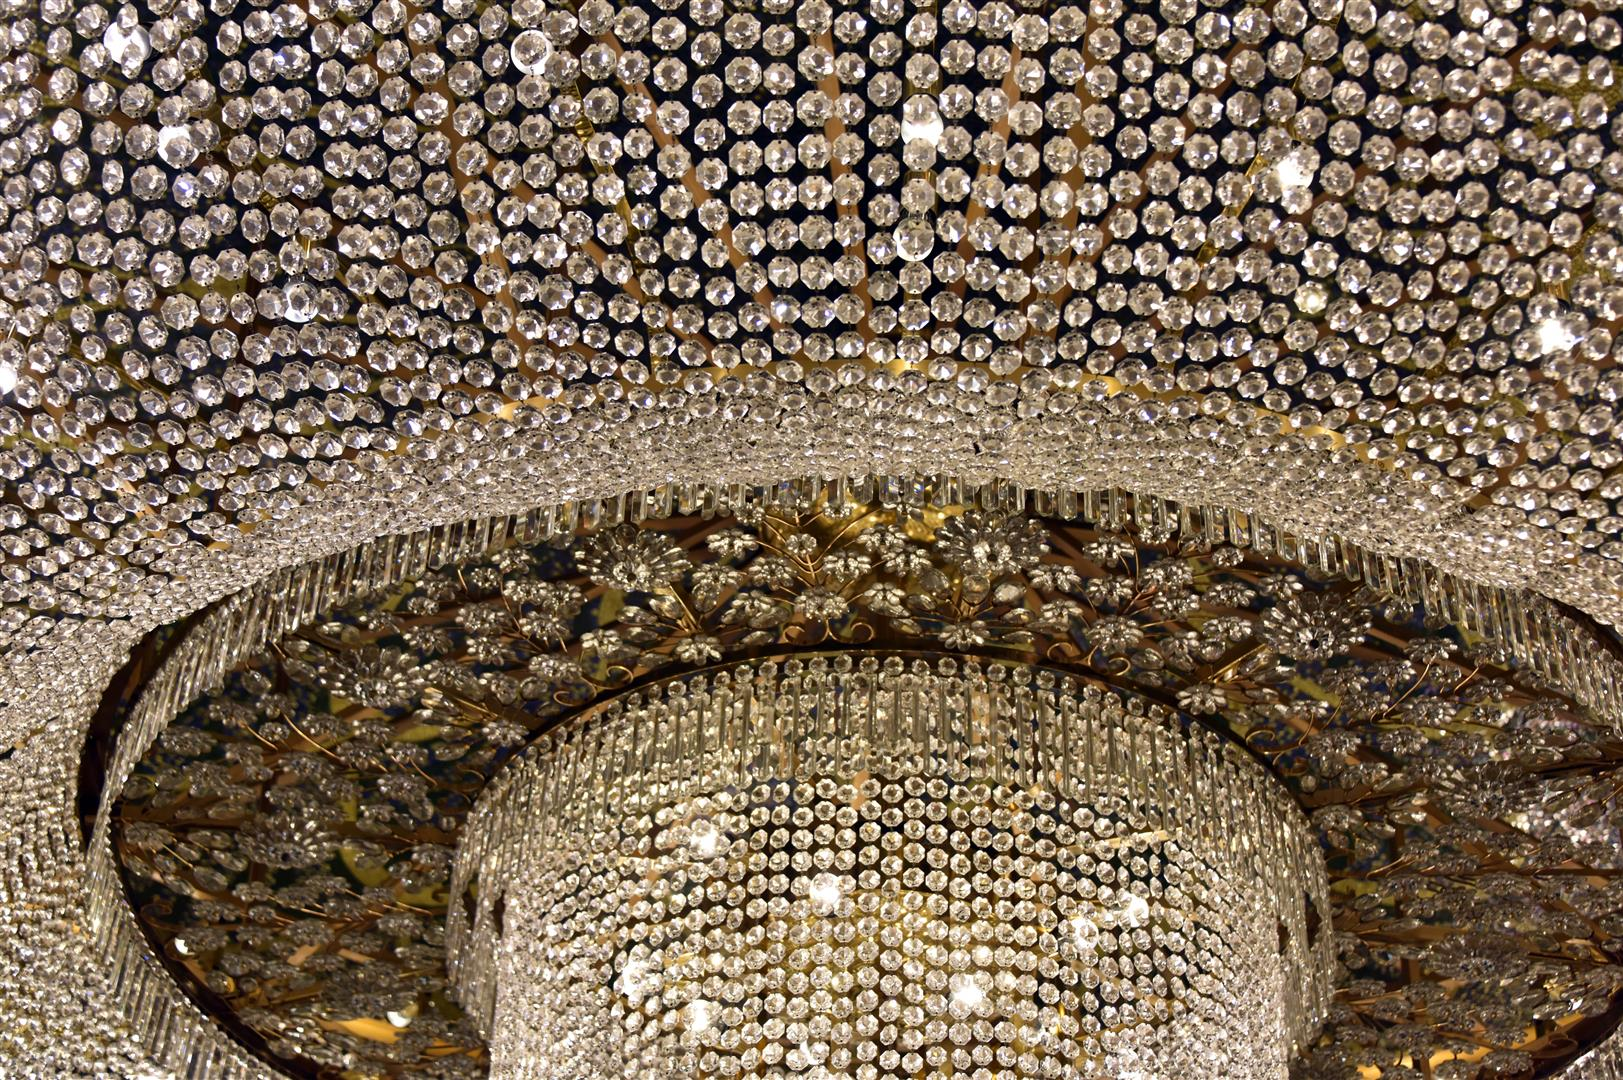 Macau - Chandelier in Grand Lisboa Hotel (Large)